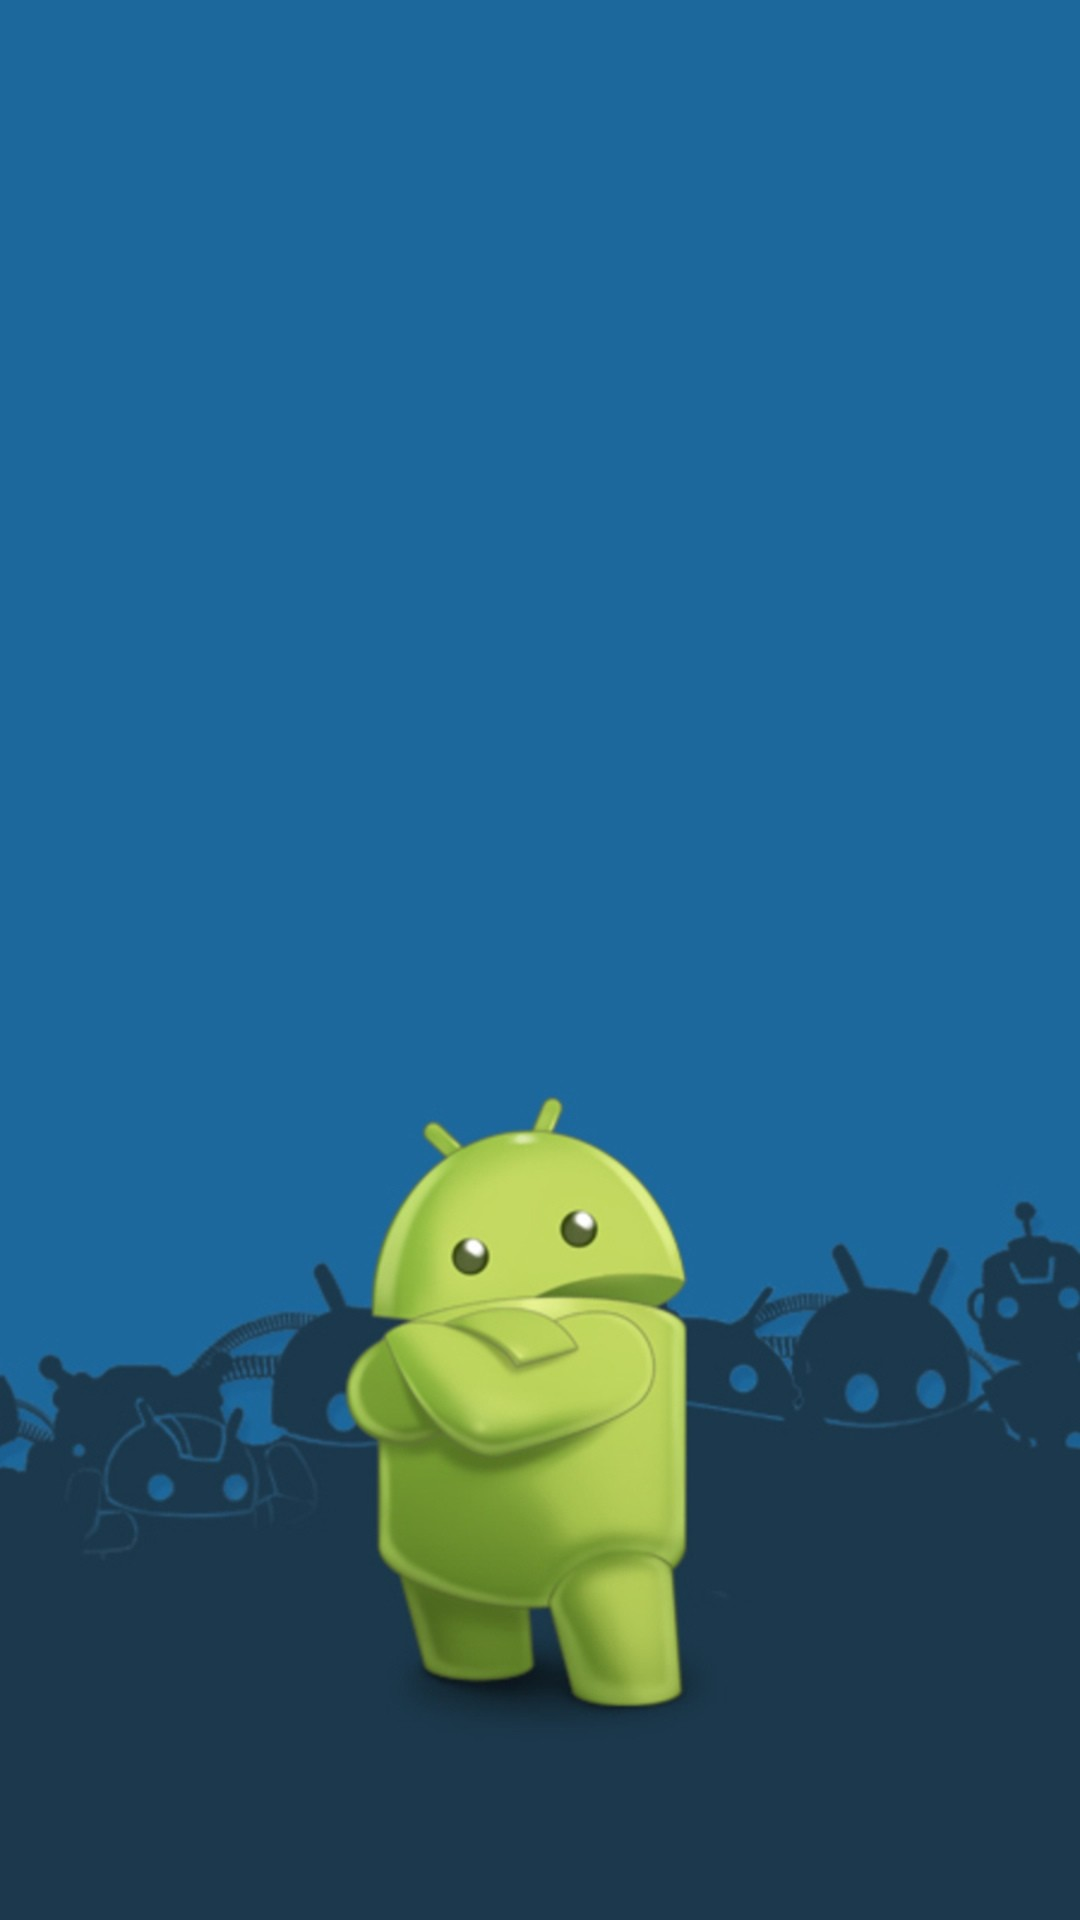 1080x1920 1,124. Cool Android Logo Android Smartphone Wallpaper